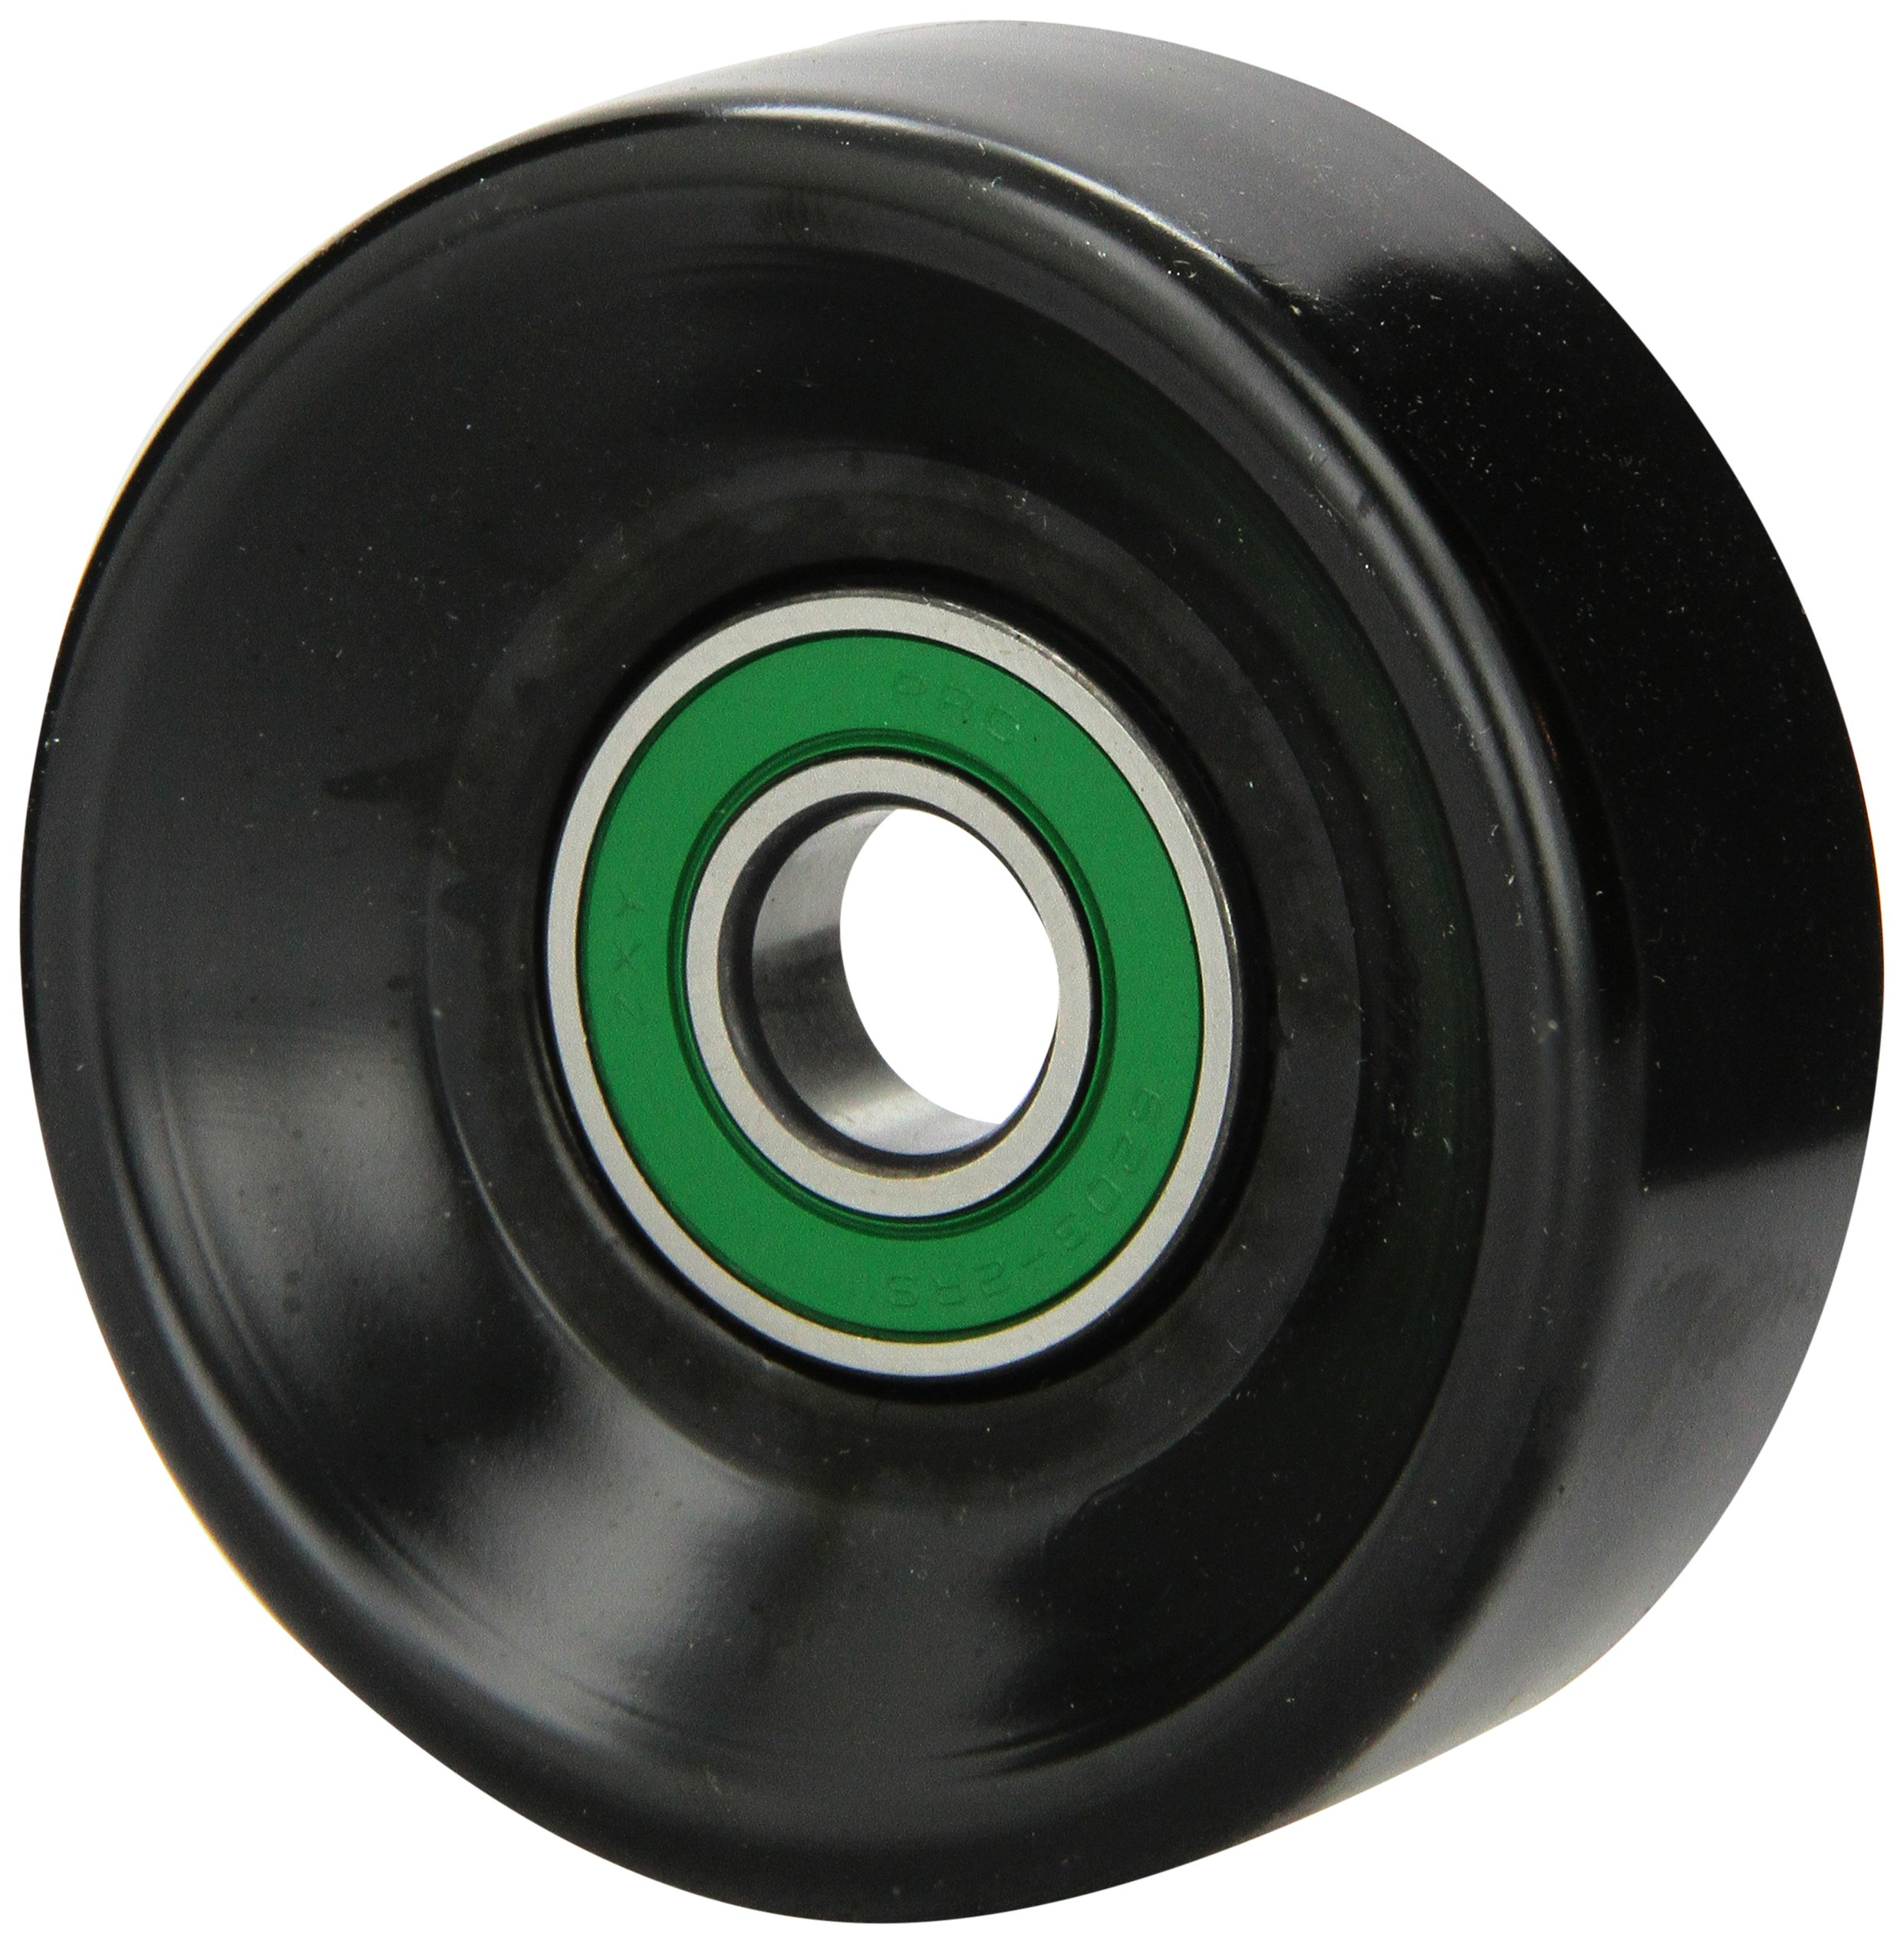 Dayco 89006 Tensioner & Idler Pulley